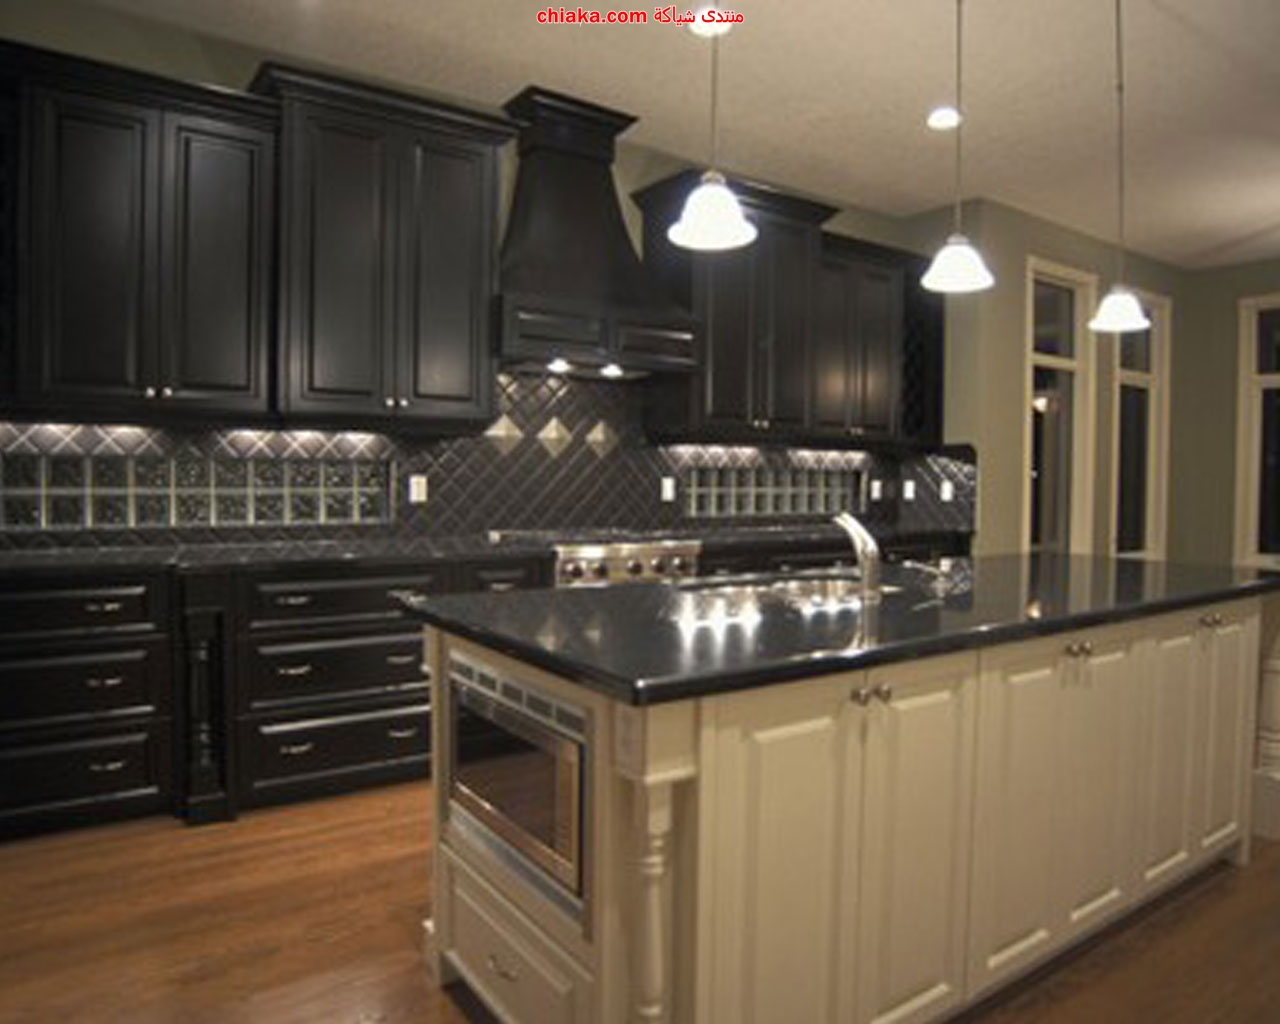 colors for kitchens with dark cabinets ديكورات مطابخ 2013 13721